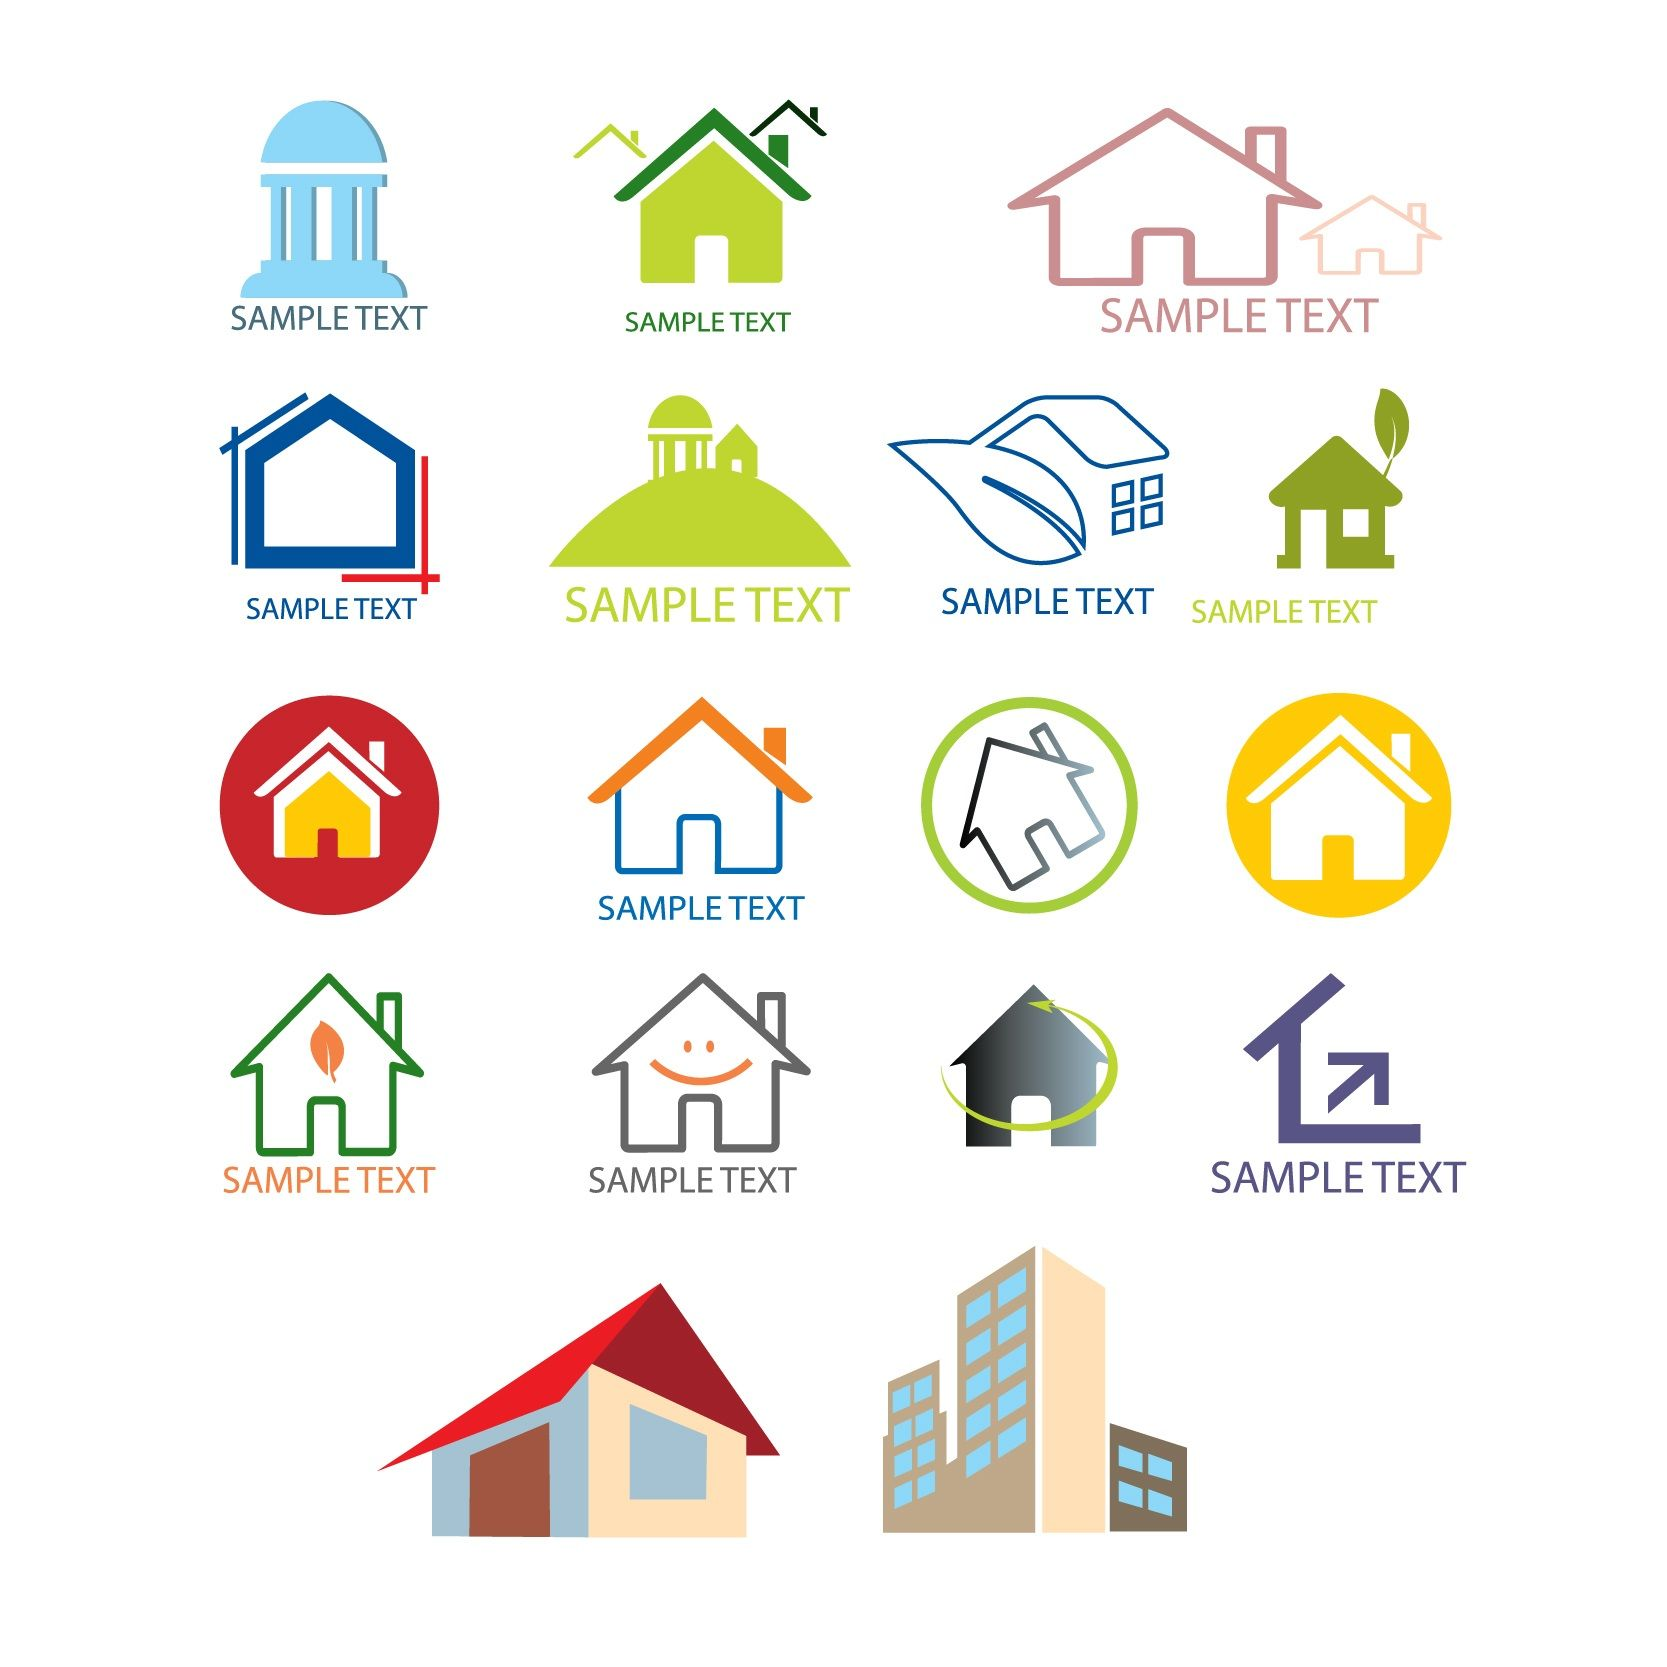 house logo design templates vector | Free Vectors | Pinterest ...